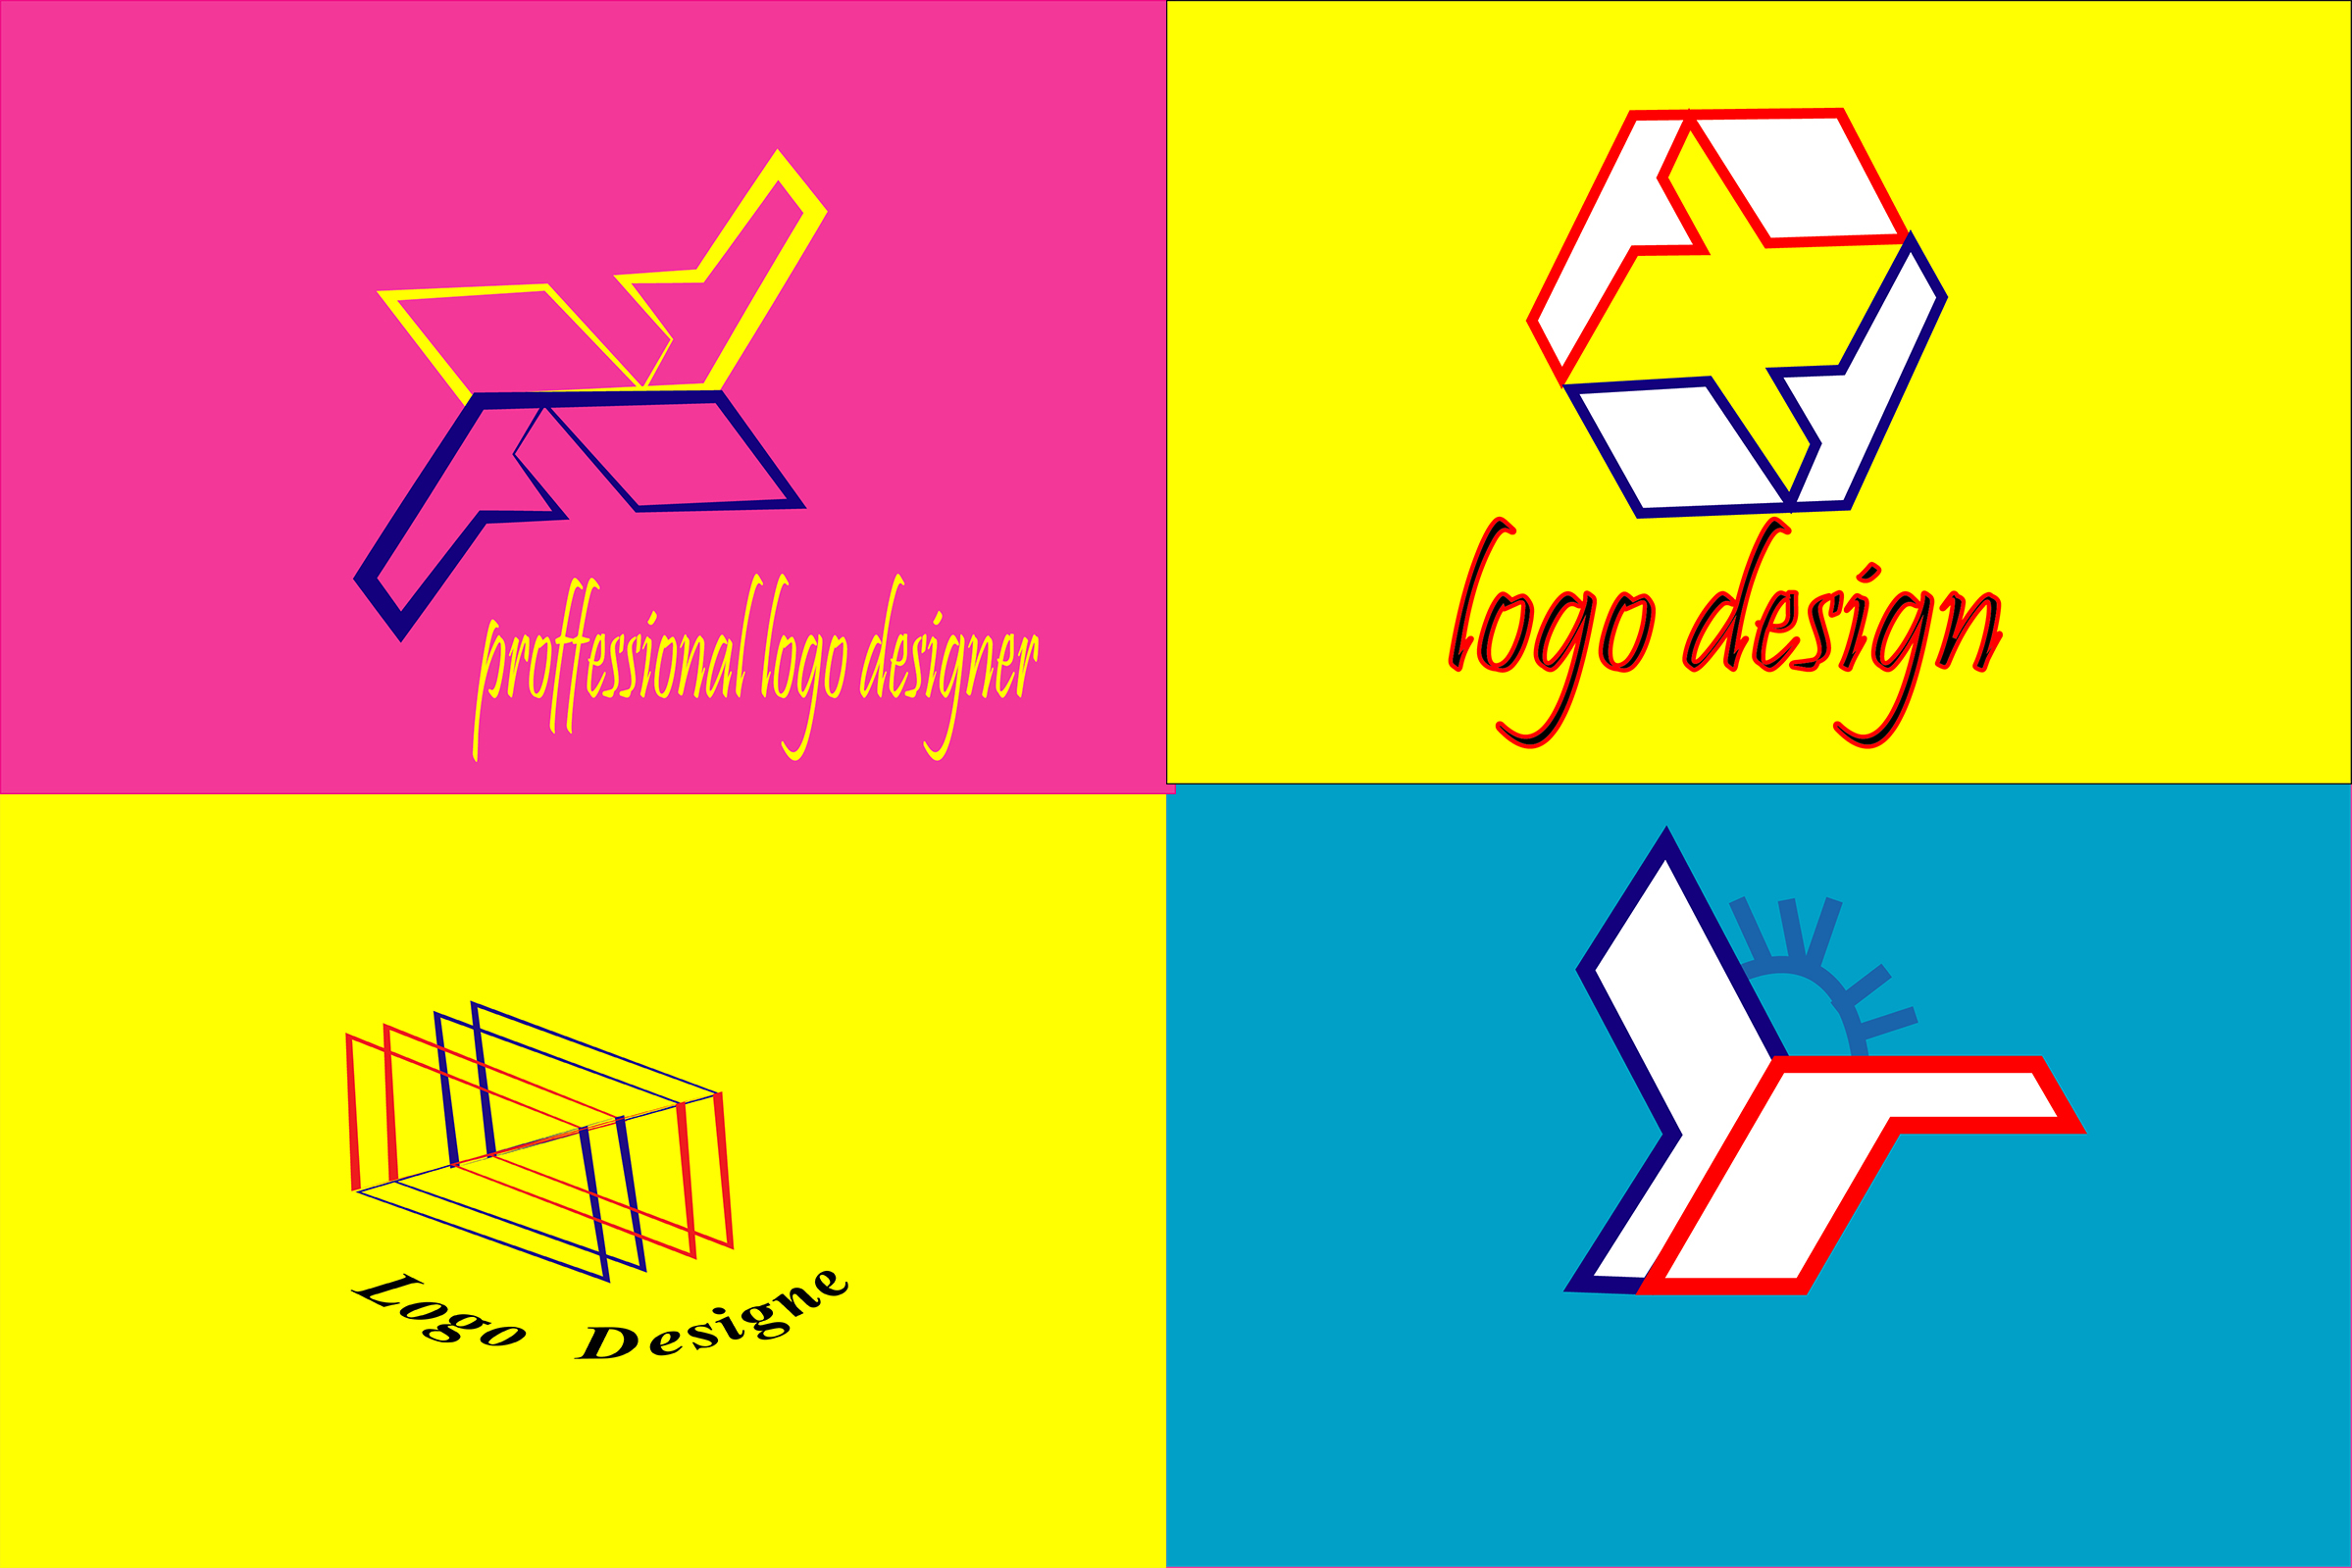 i will Do modern minimalist flat logo design in 24 hours